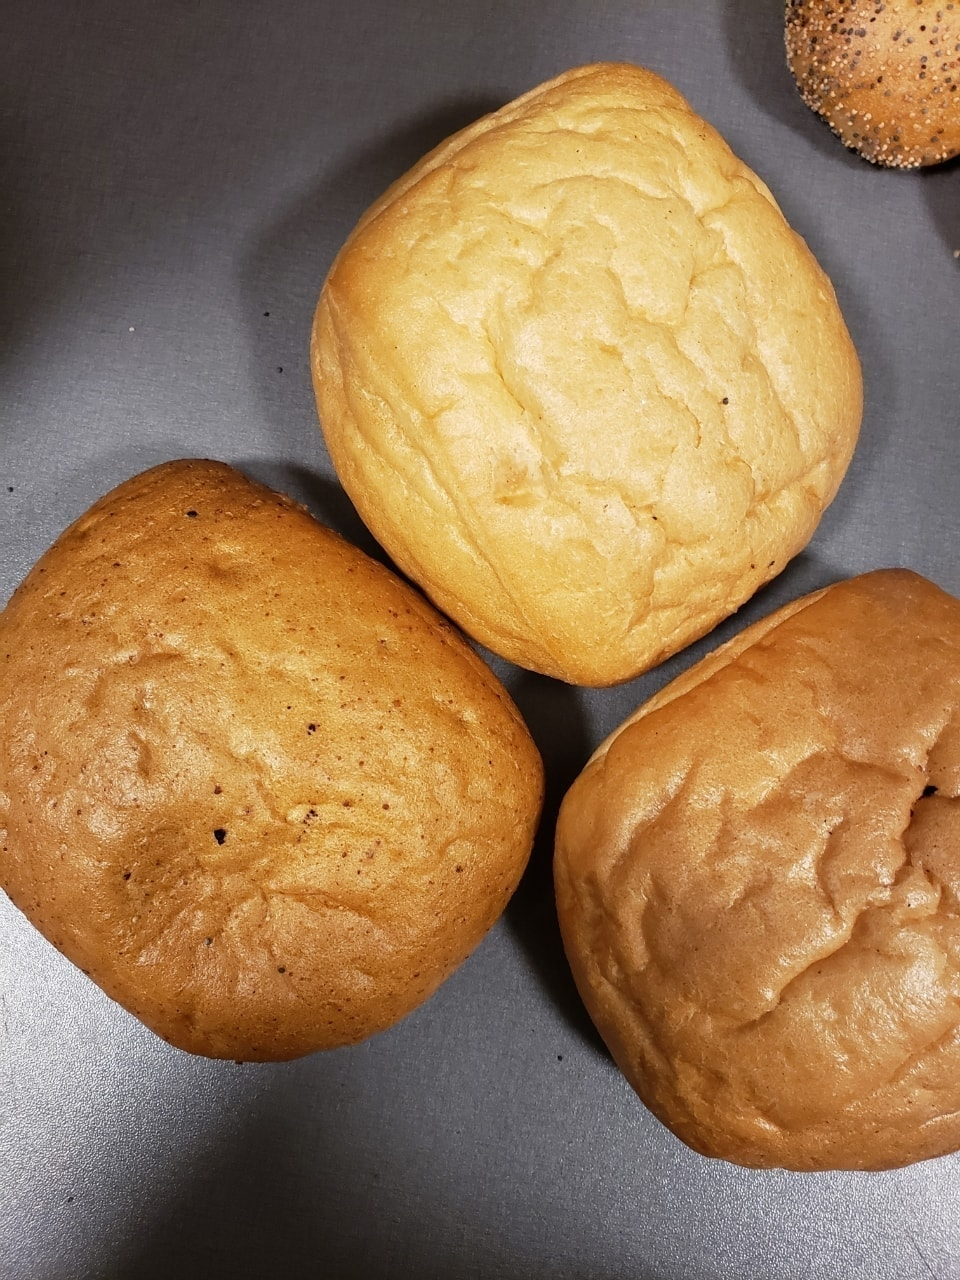 Fresh bread 25/09 from lindquists